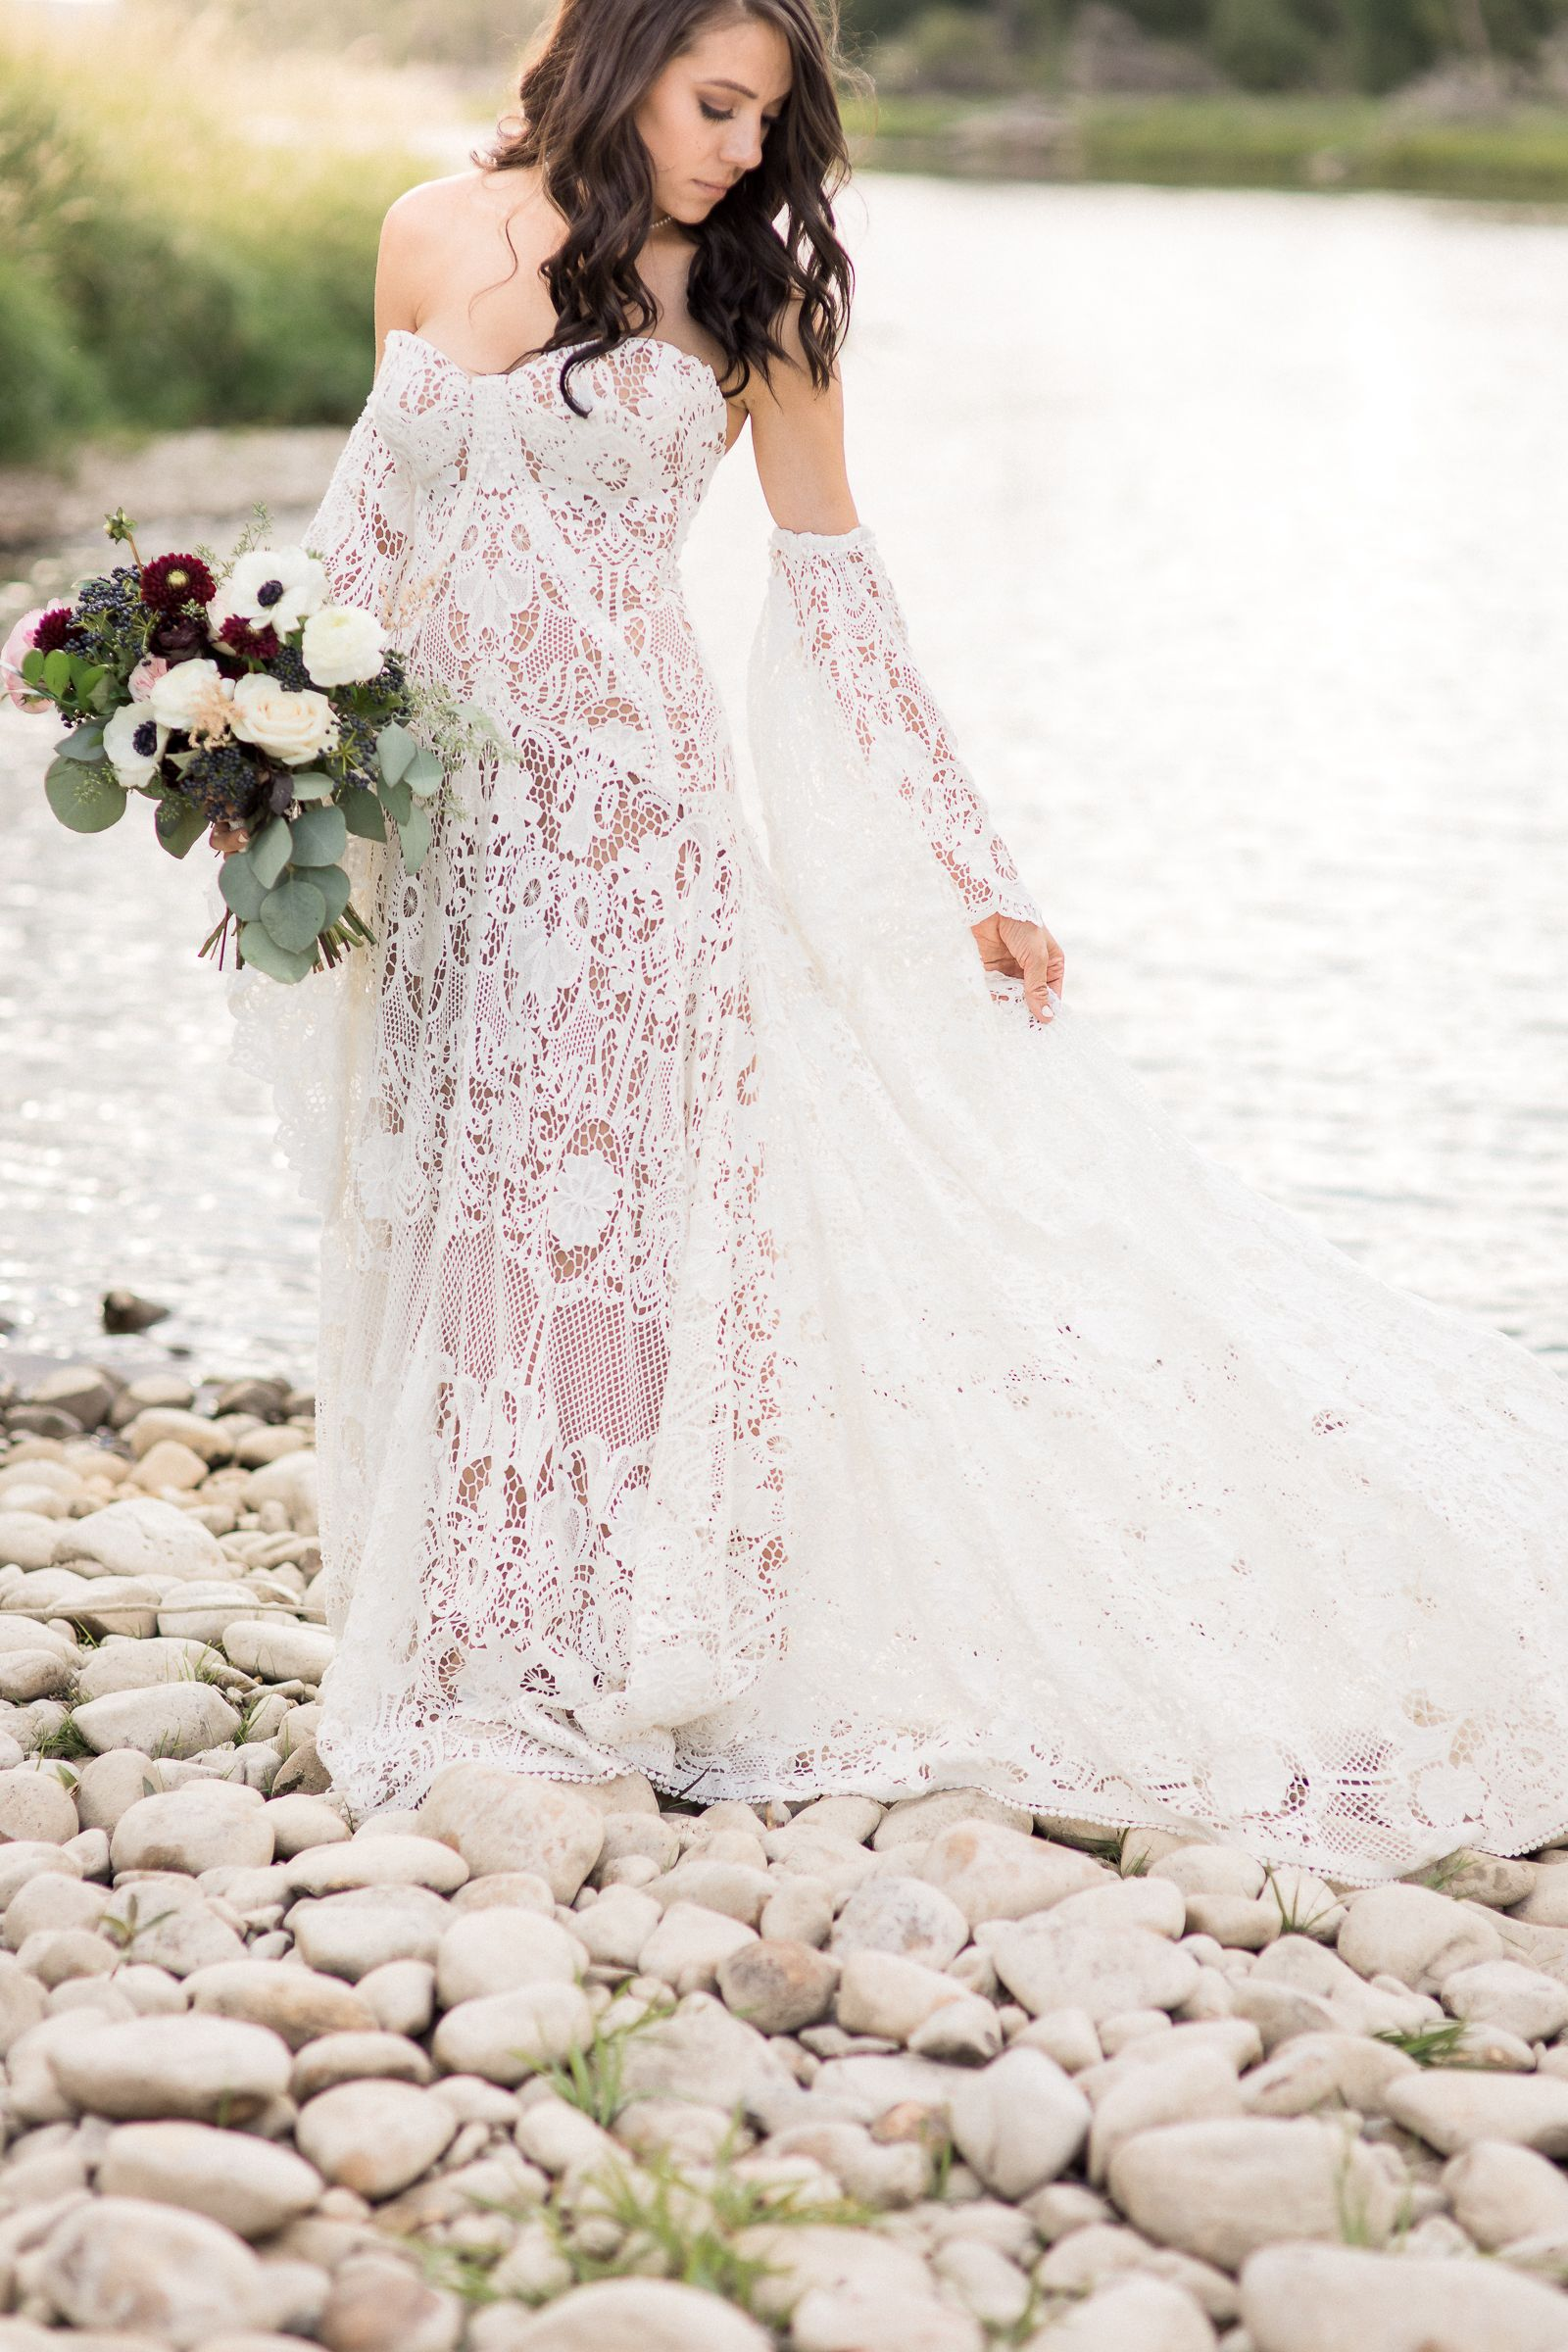 Purple Wedding Dress | Lace wedding dresses, Lace wedding and ...